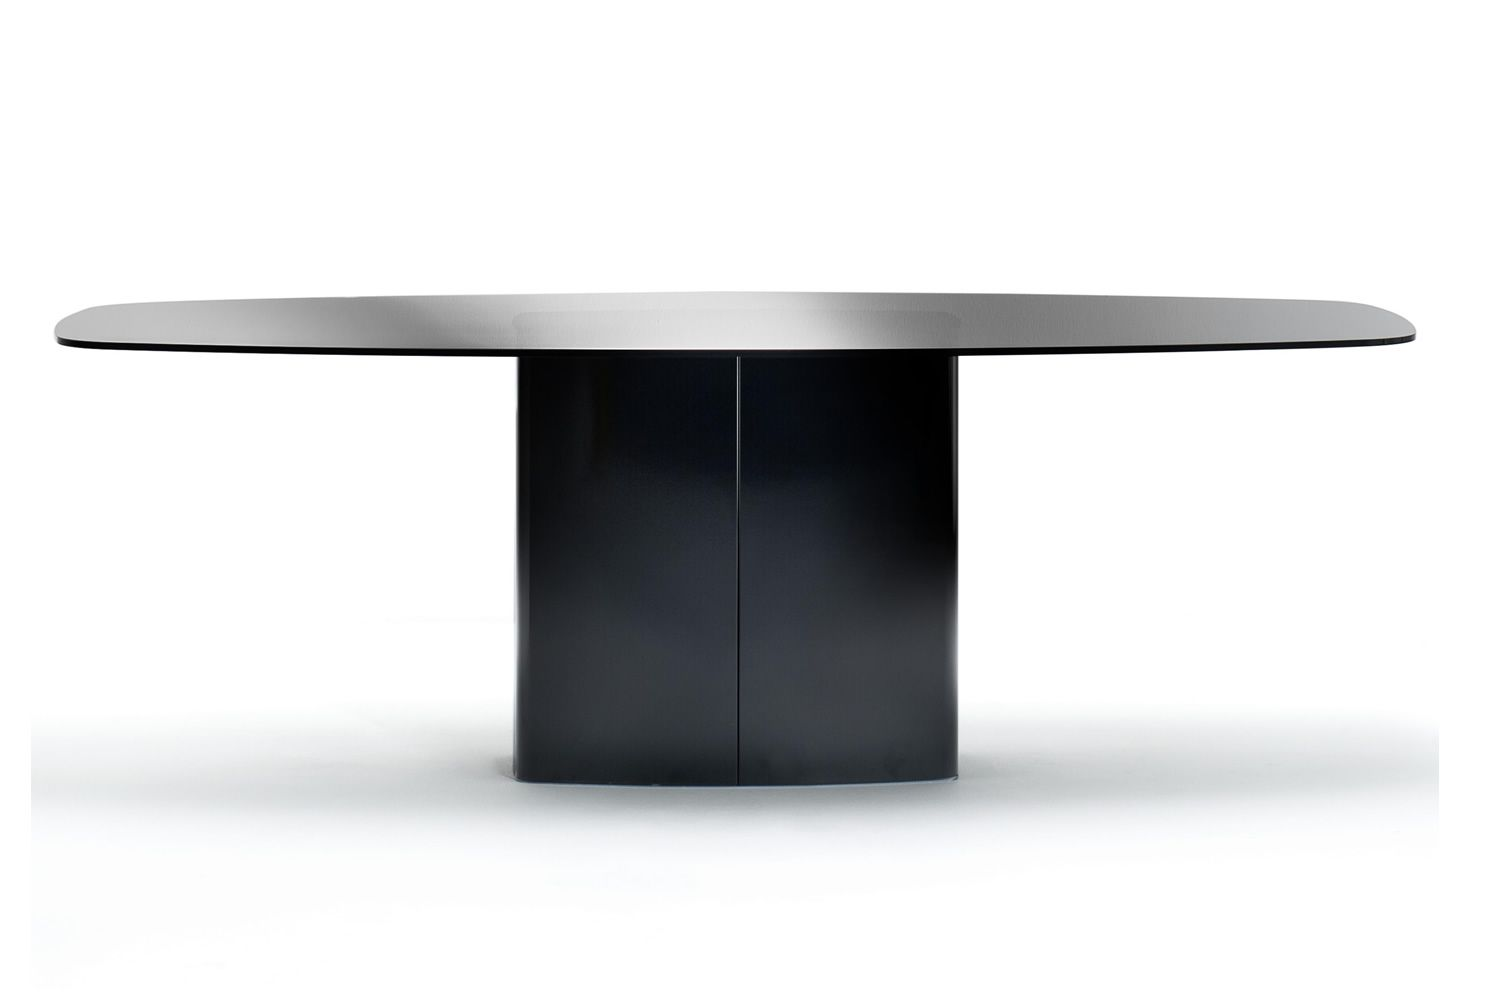 Design table for meating room, in black laquered metal base and smoked grey glass top version